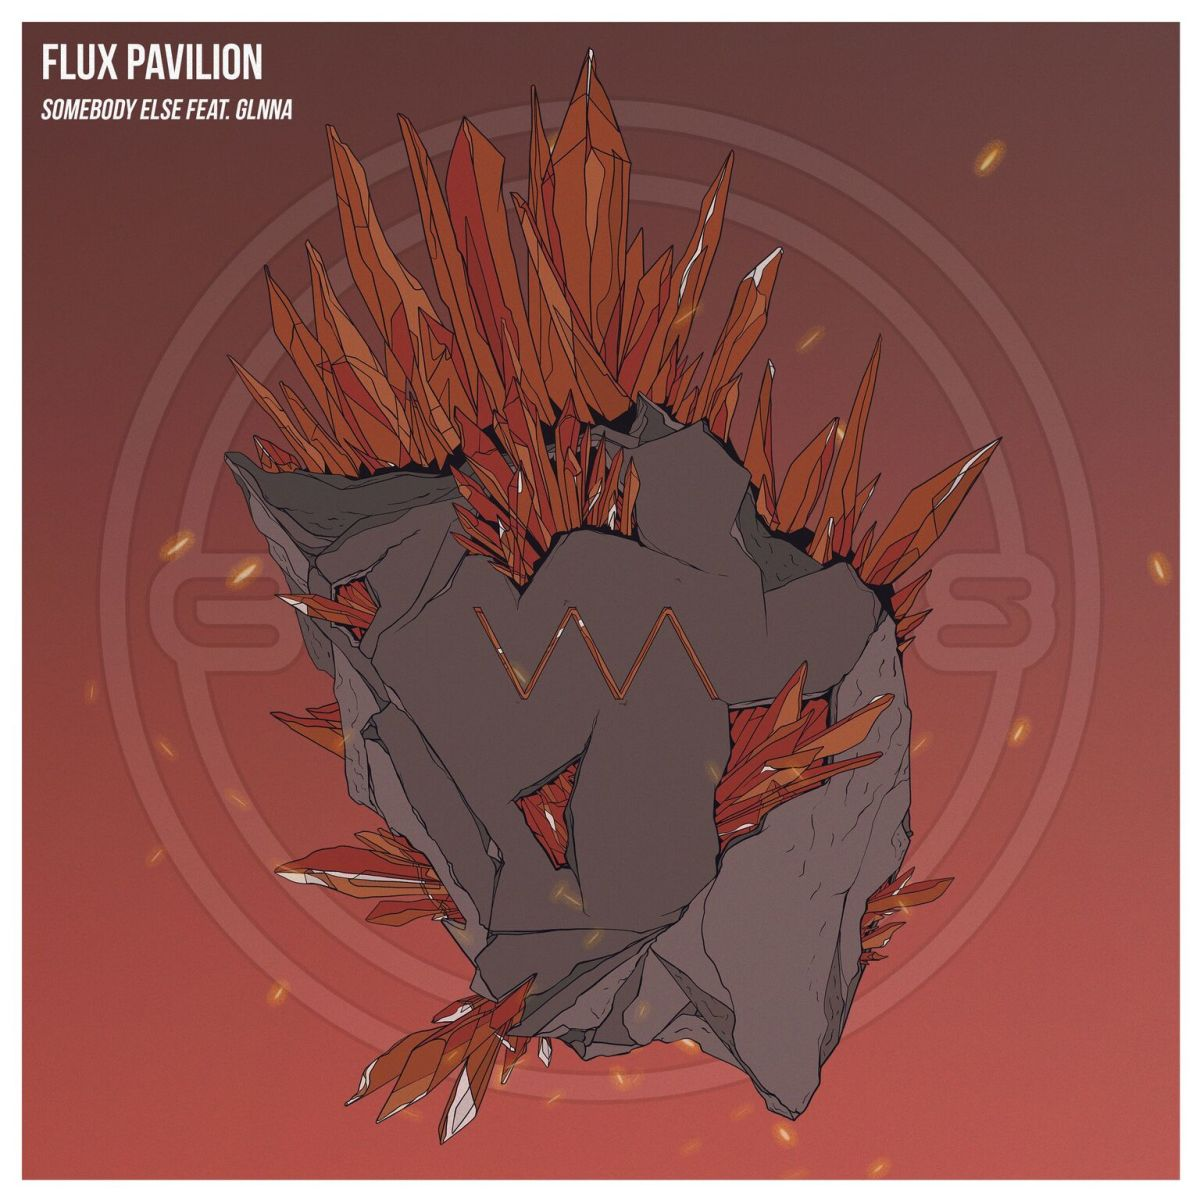 Flux Pavilion Somebody Else Cover Art